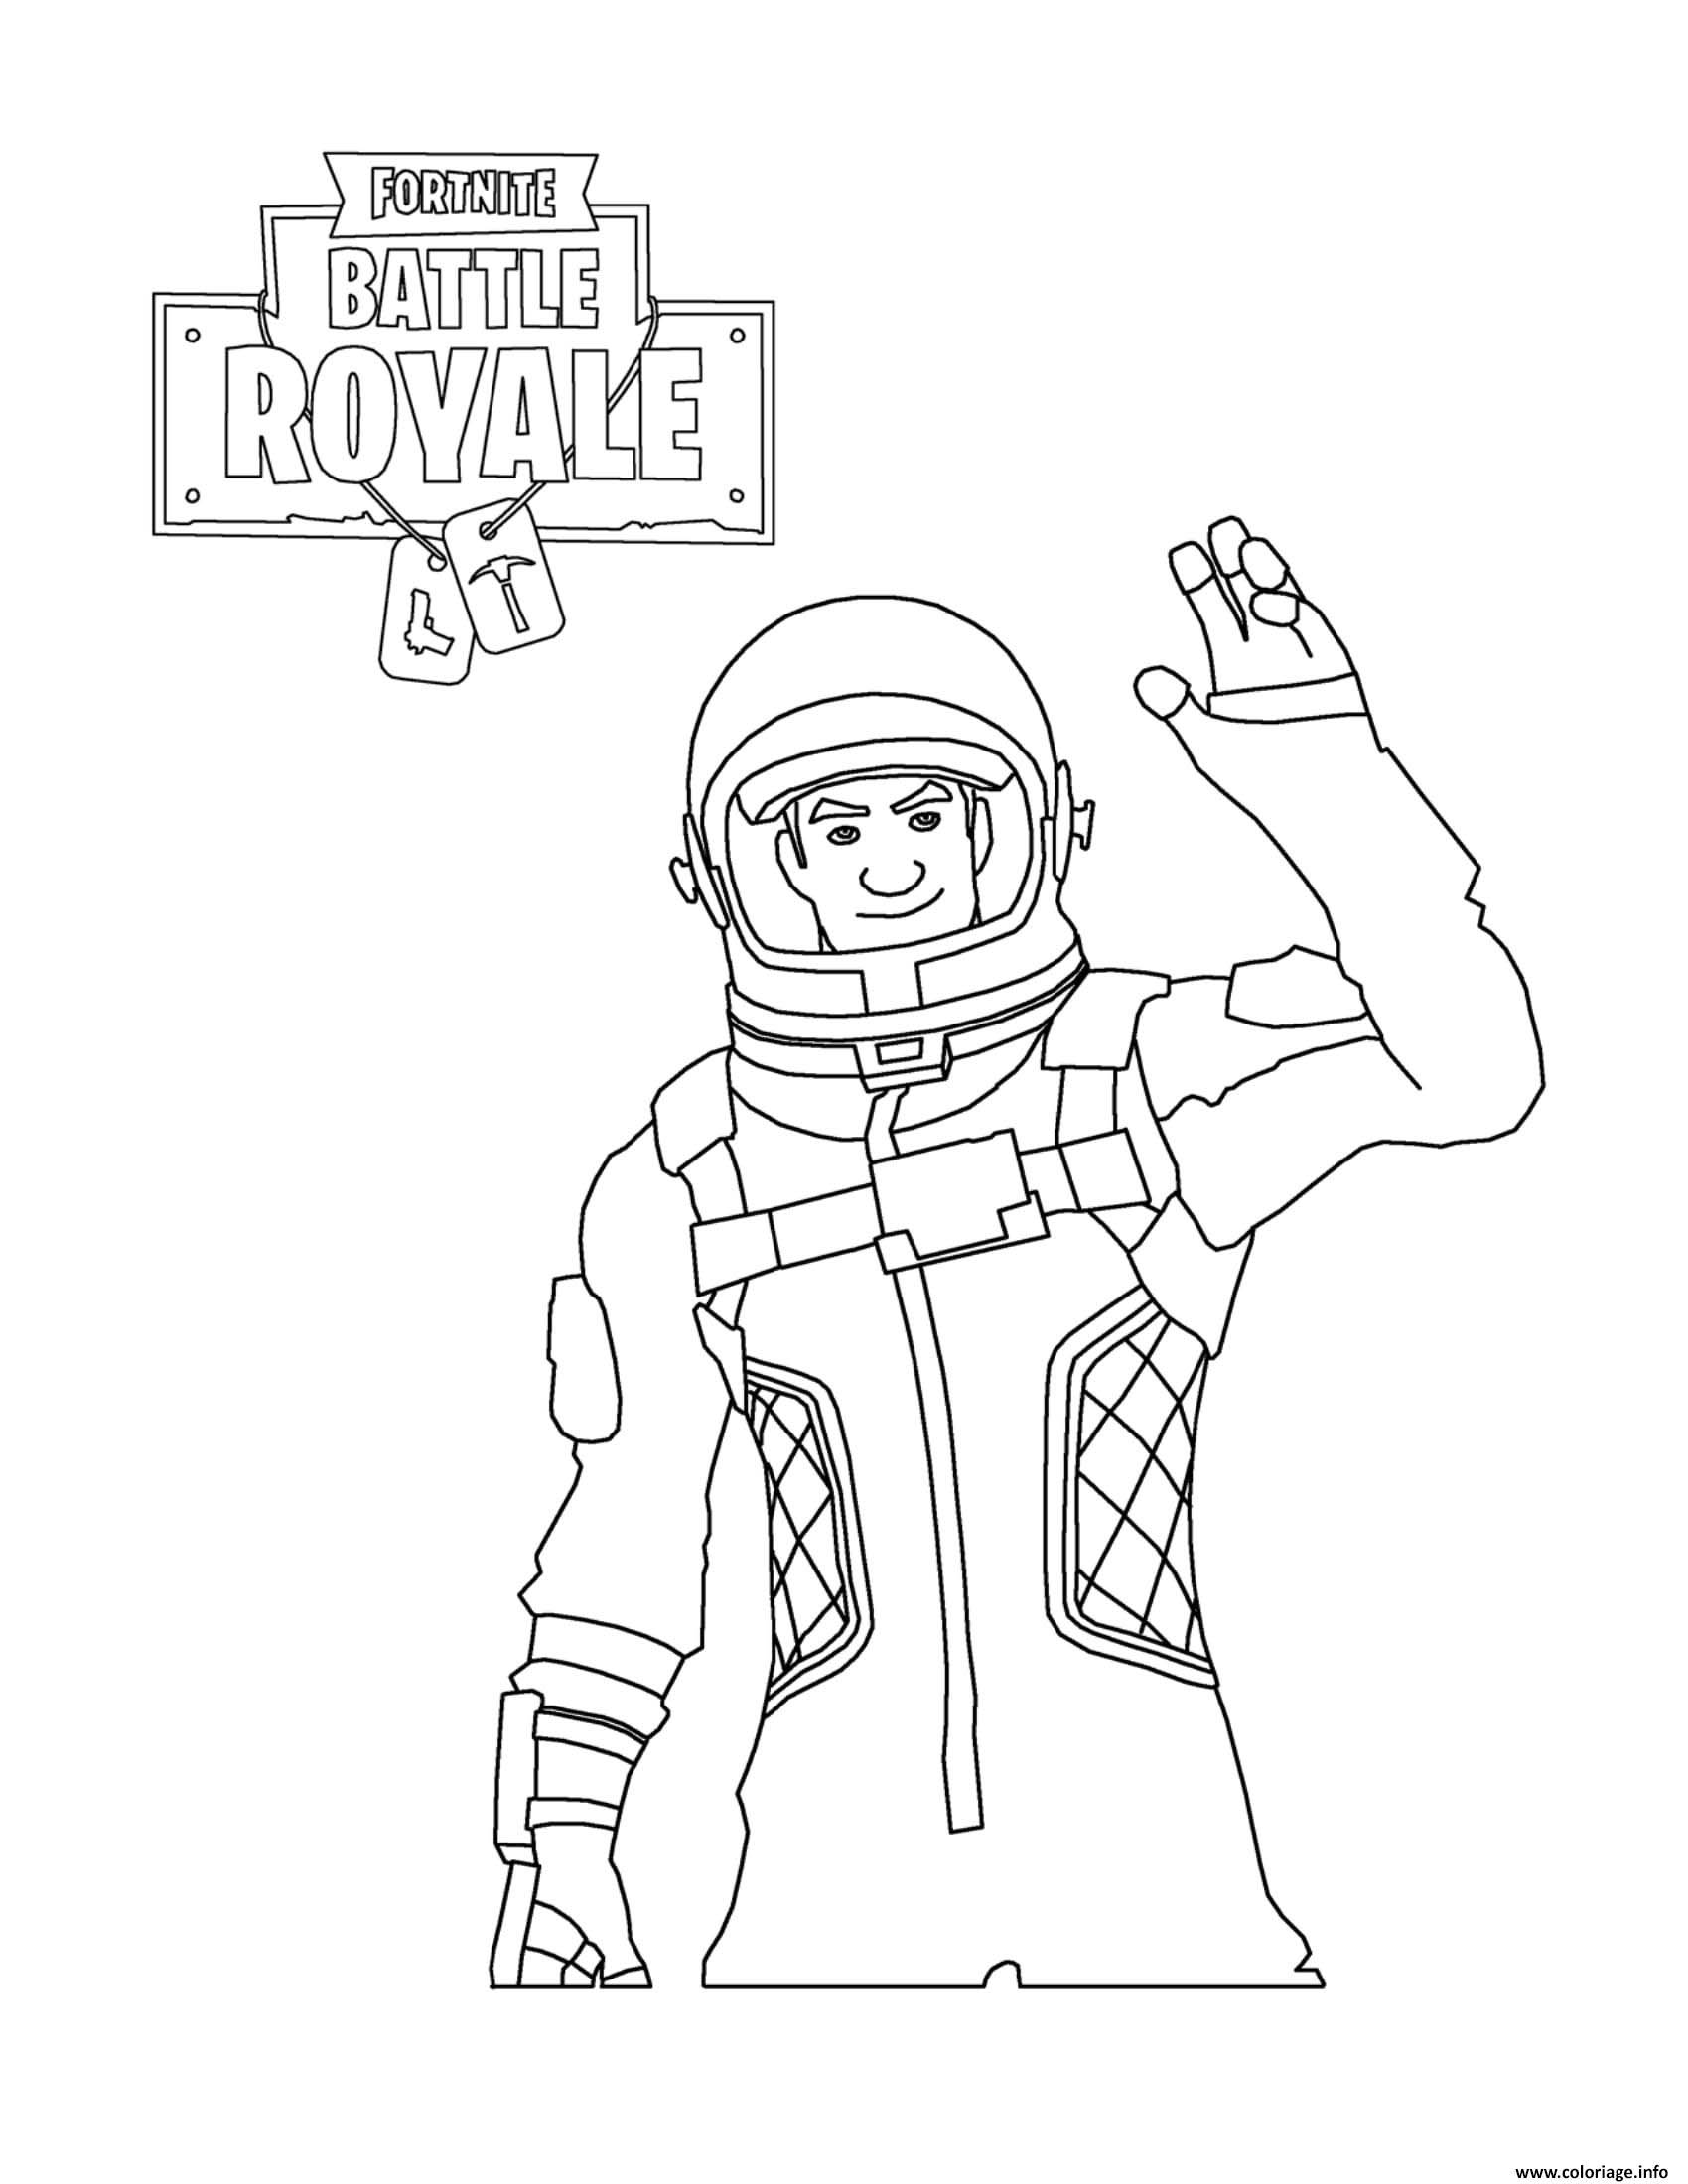 Dj Lama Fortnite Coloring Pages